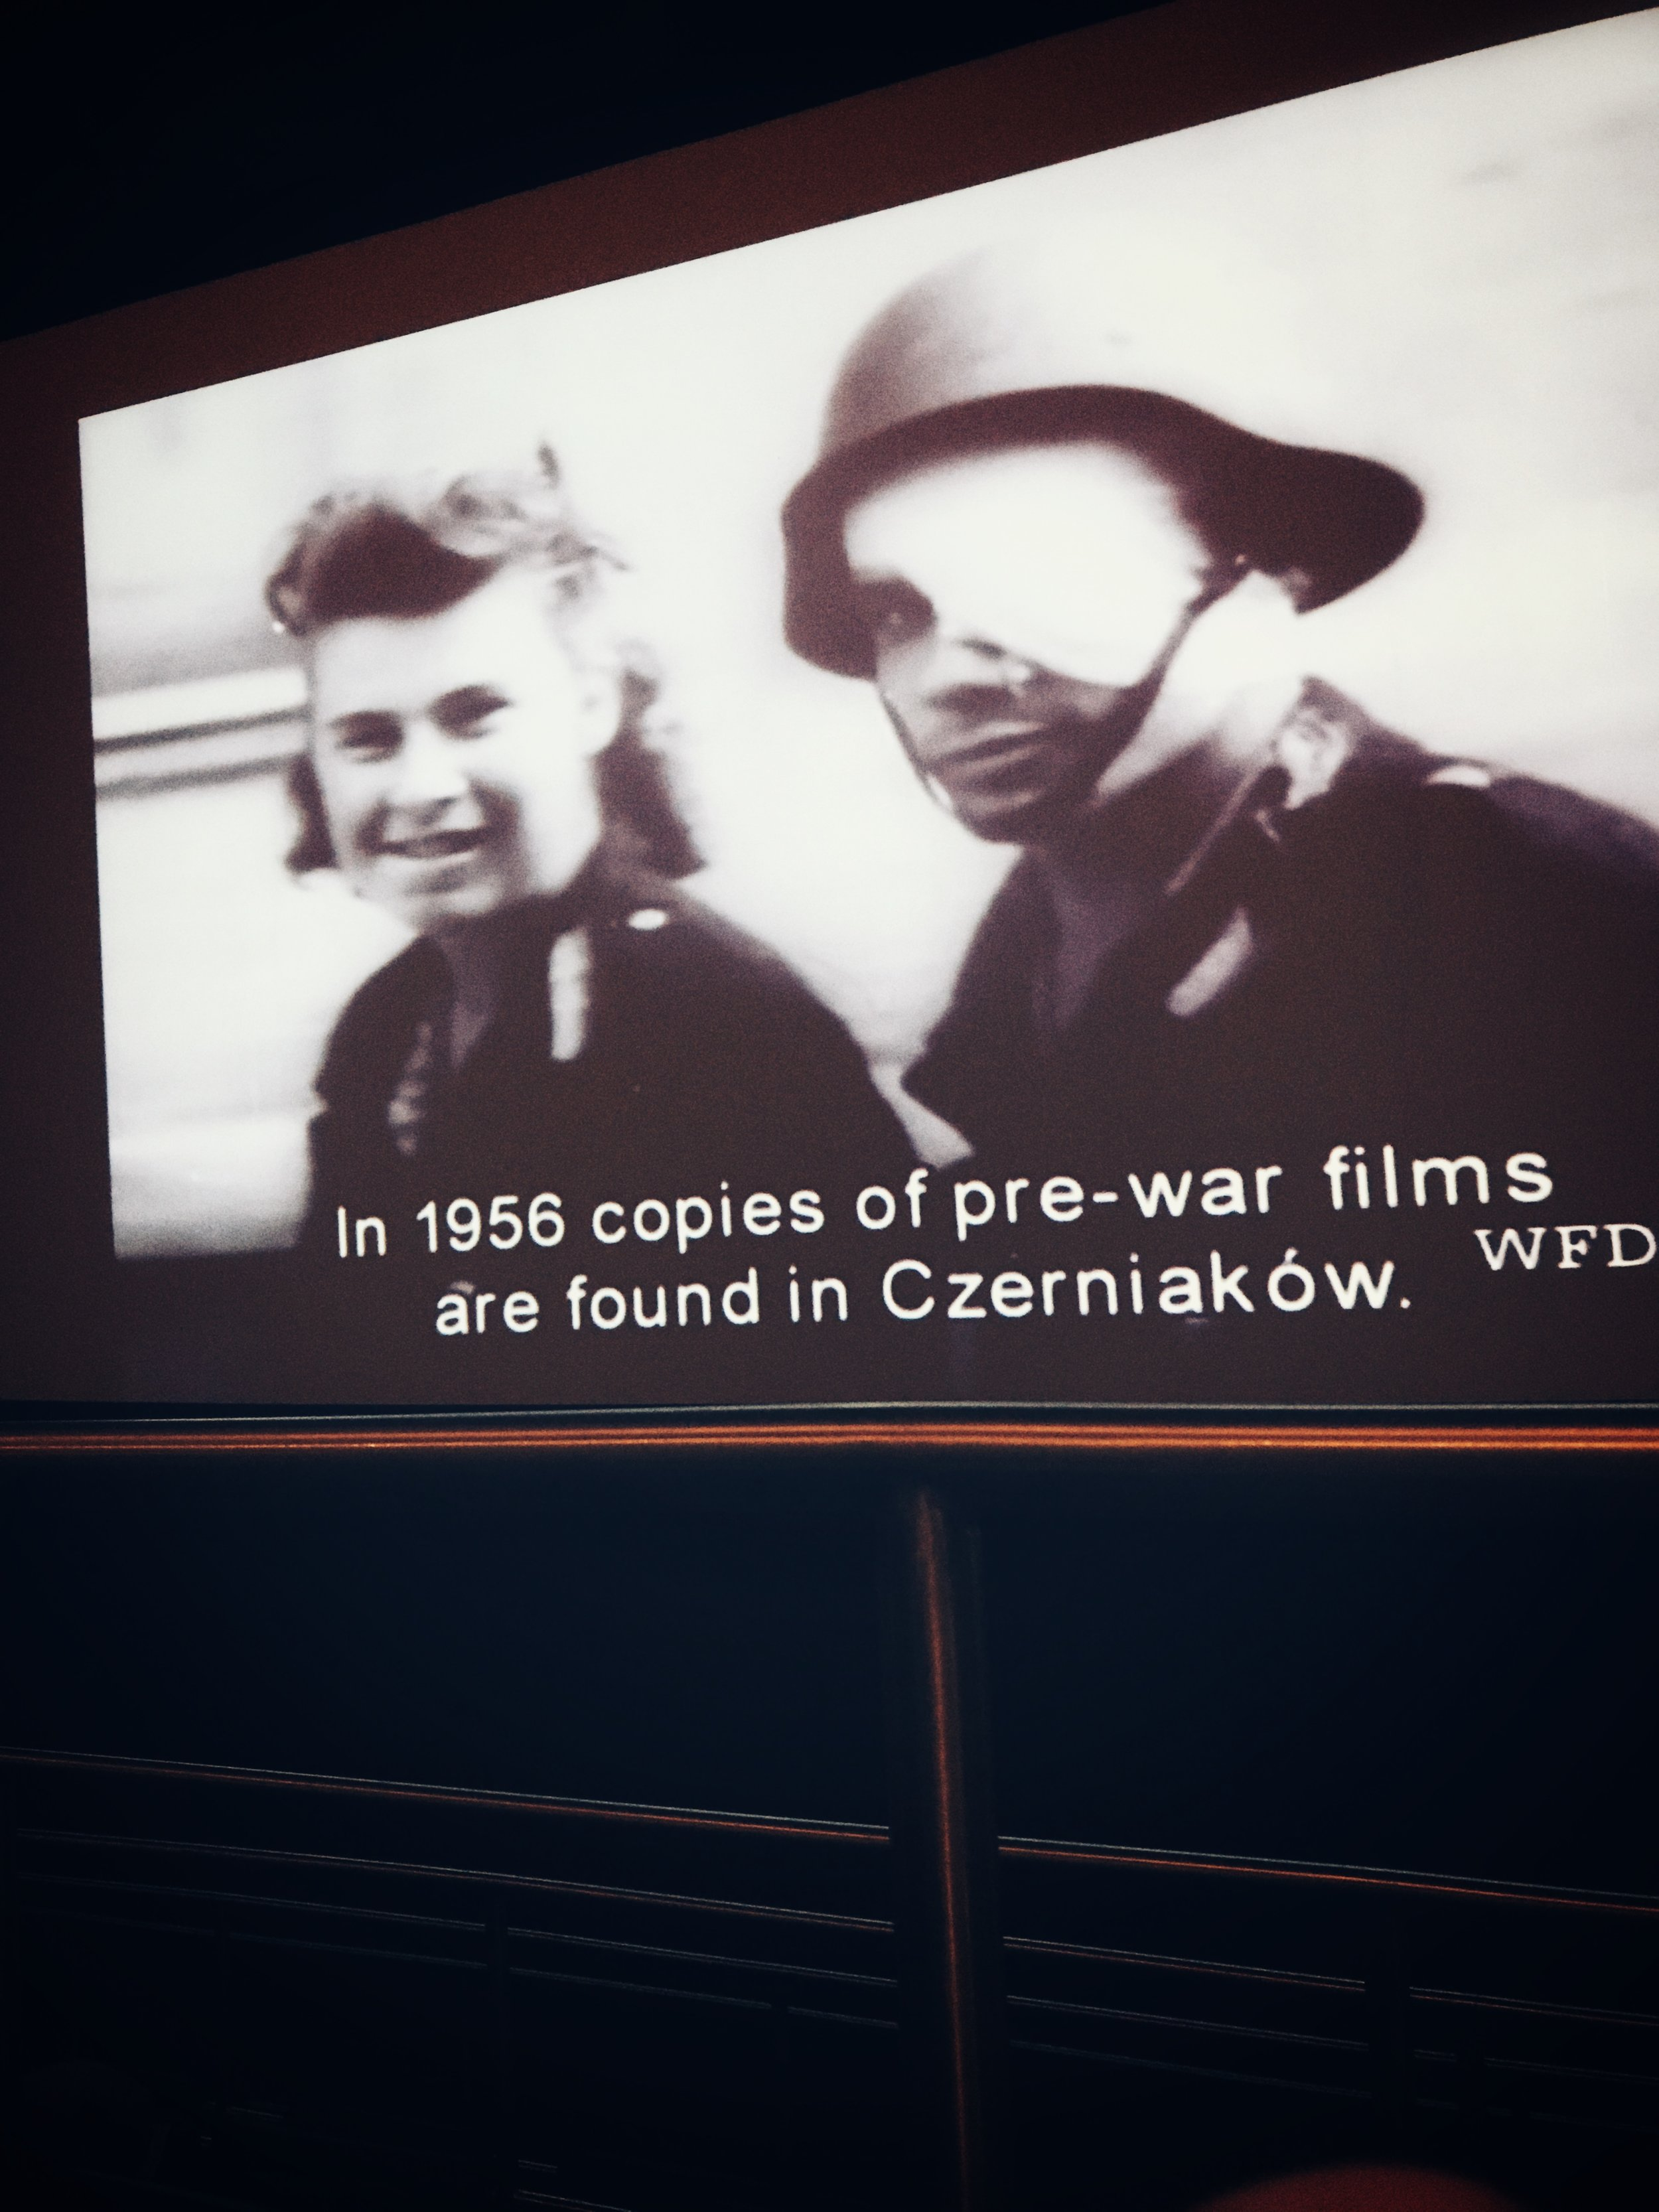 footage in the warsaw uprising museum